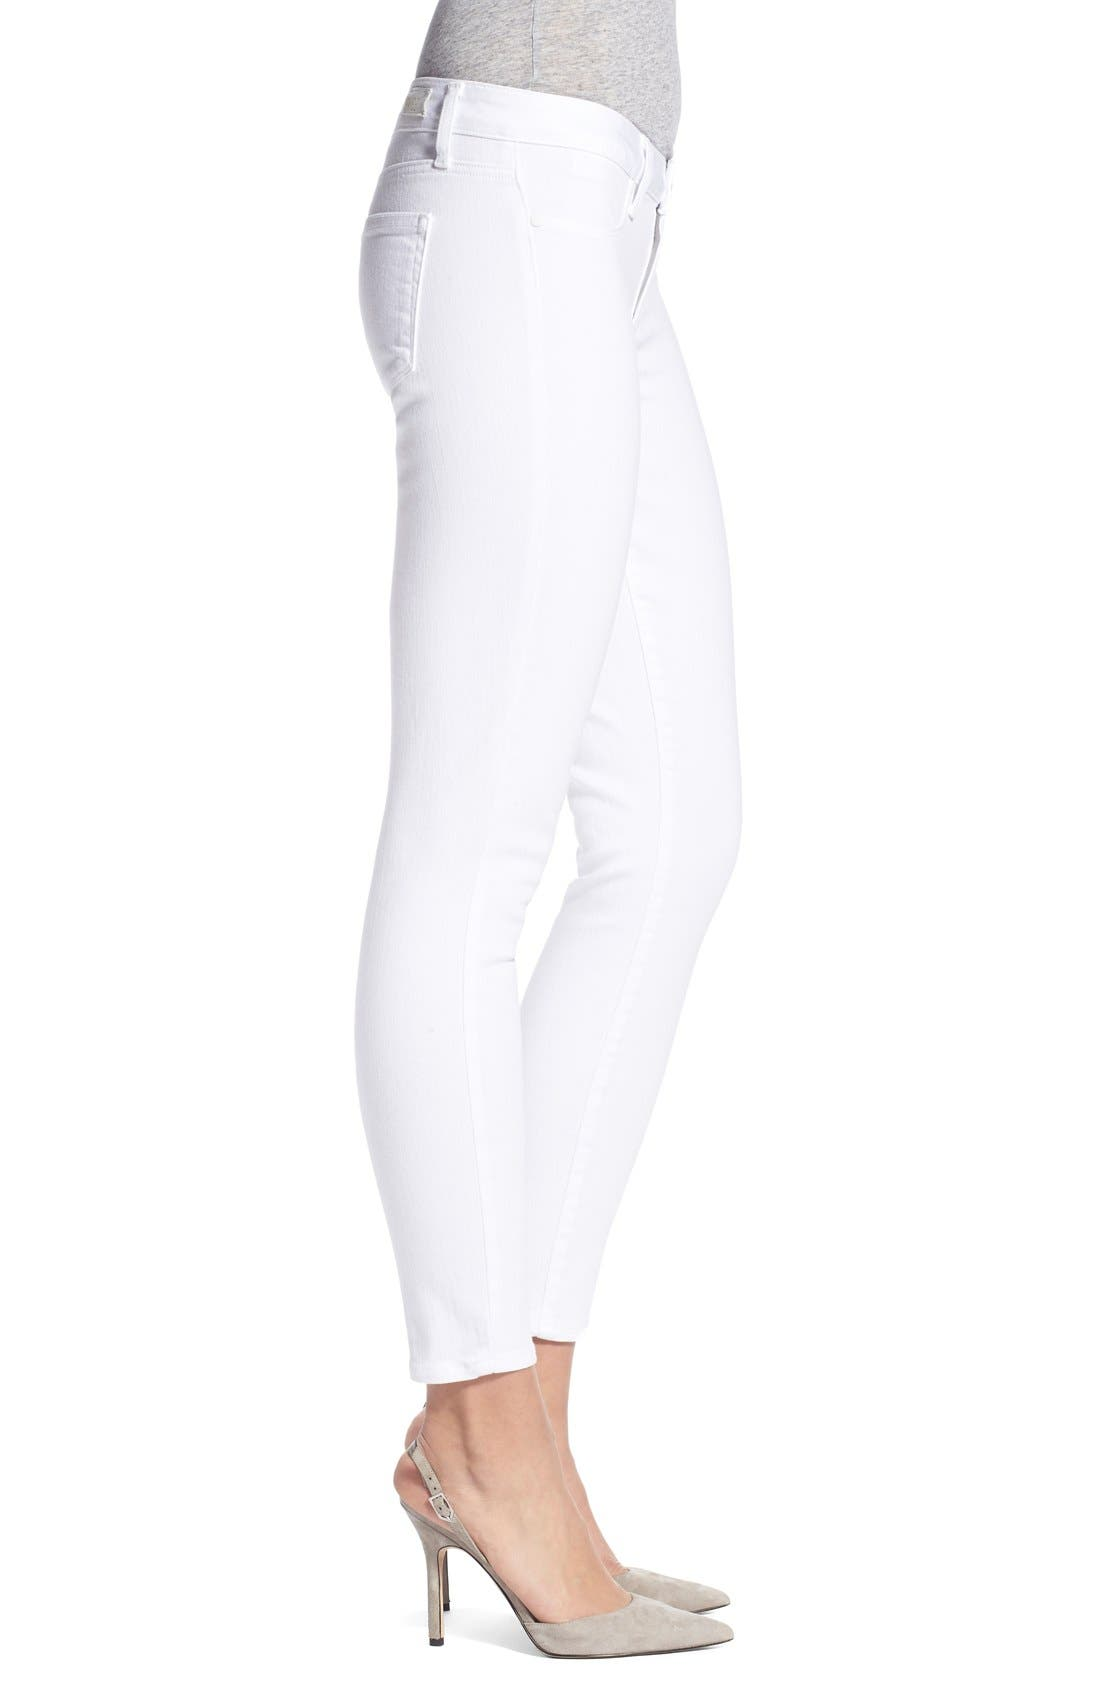 'Verdugo' Ankle Skinny Jeans,                             Alternate thumbnail 4, color,                             Ultra White